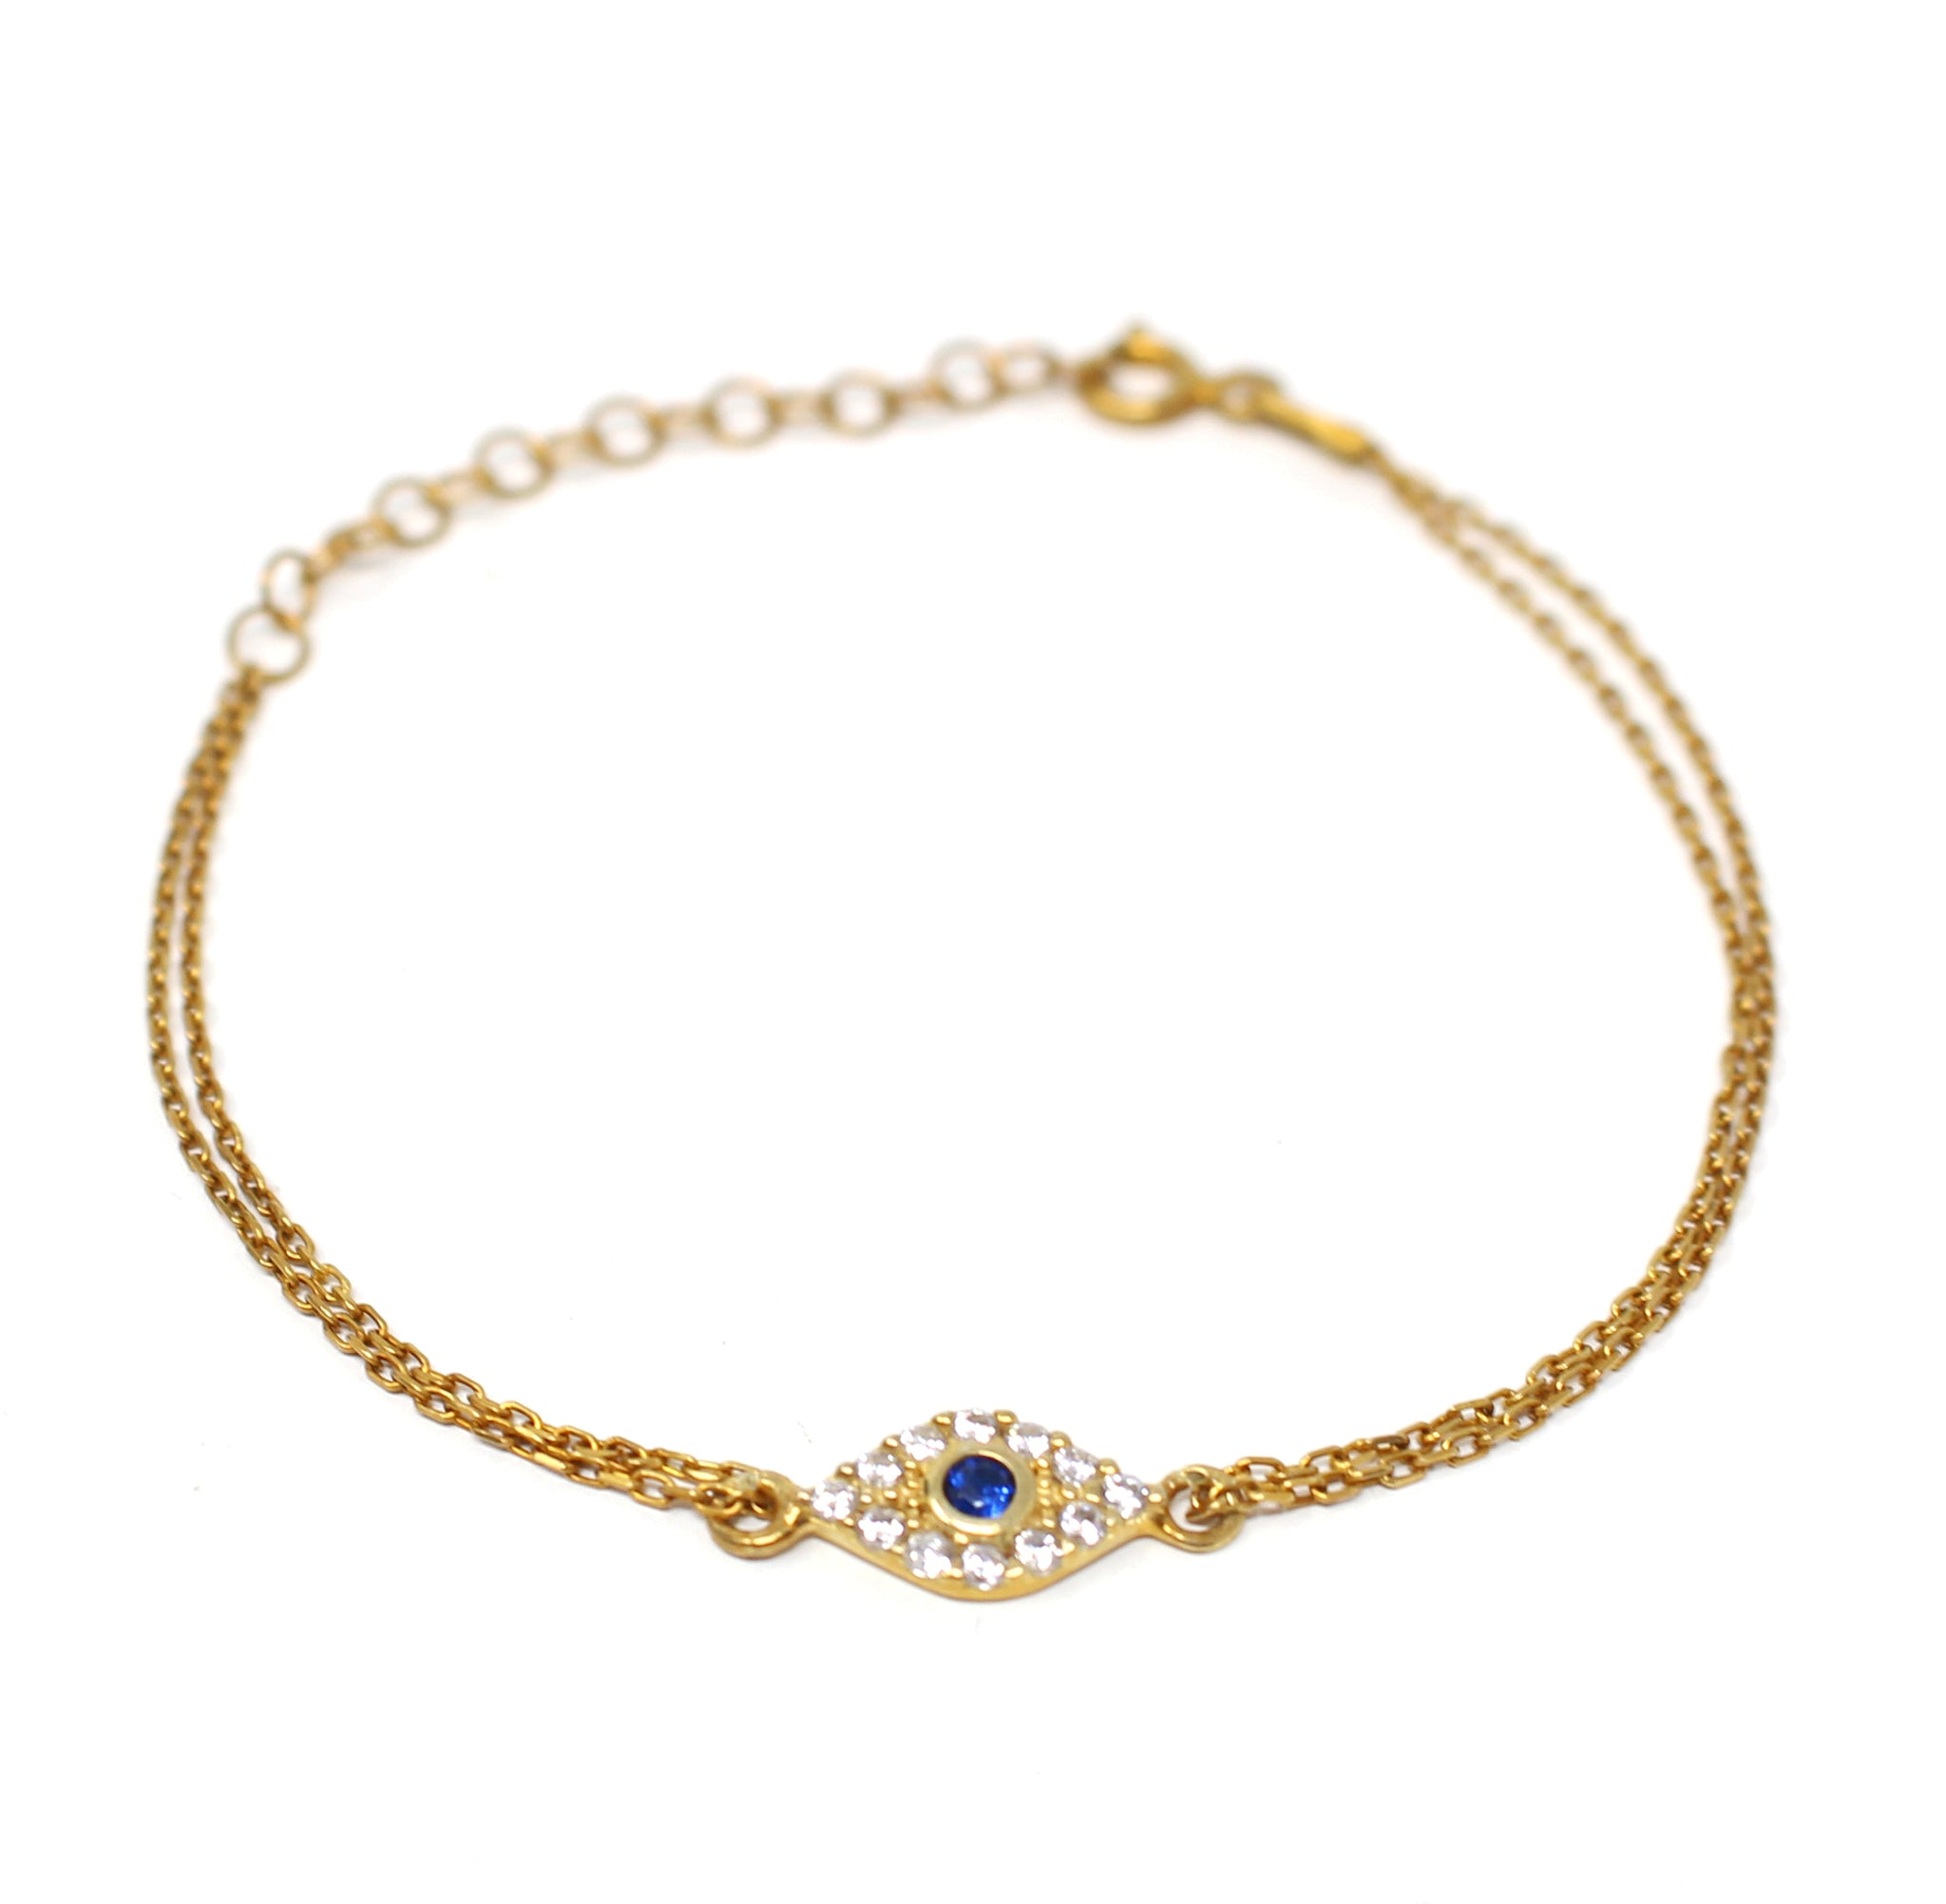 Golden Double Chain Eye Bracelet